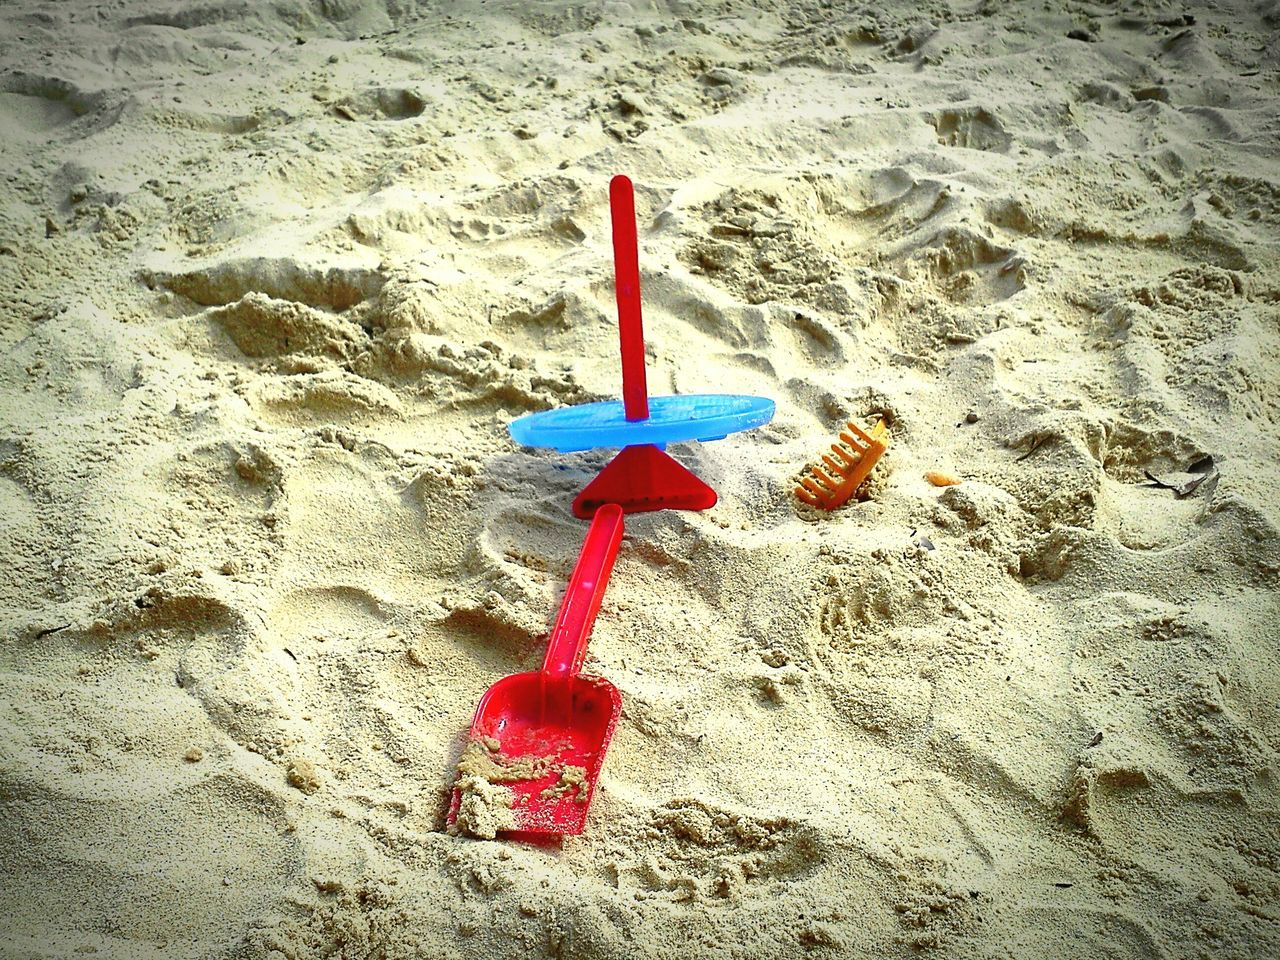 sand, beach, shore, red, no people, high angle view, day, outdoors, sea, nature, sand pail and shovel